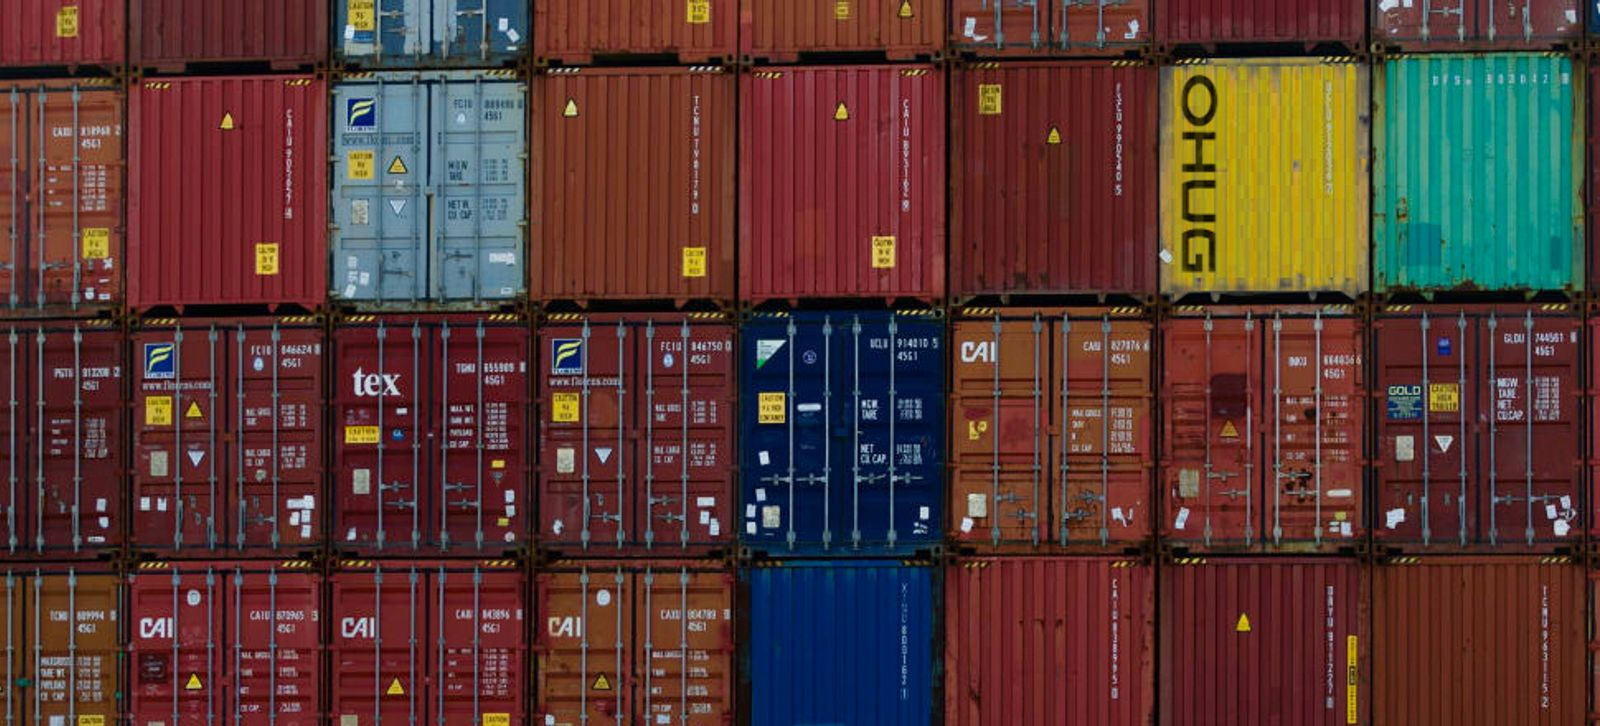 Upwards of 30% of shipping containers move in and out of New Zealand empty. Shipping chaos means they are piling up in yards.  Photo: John Sefton